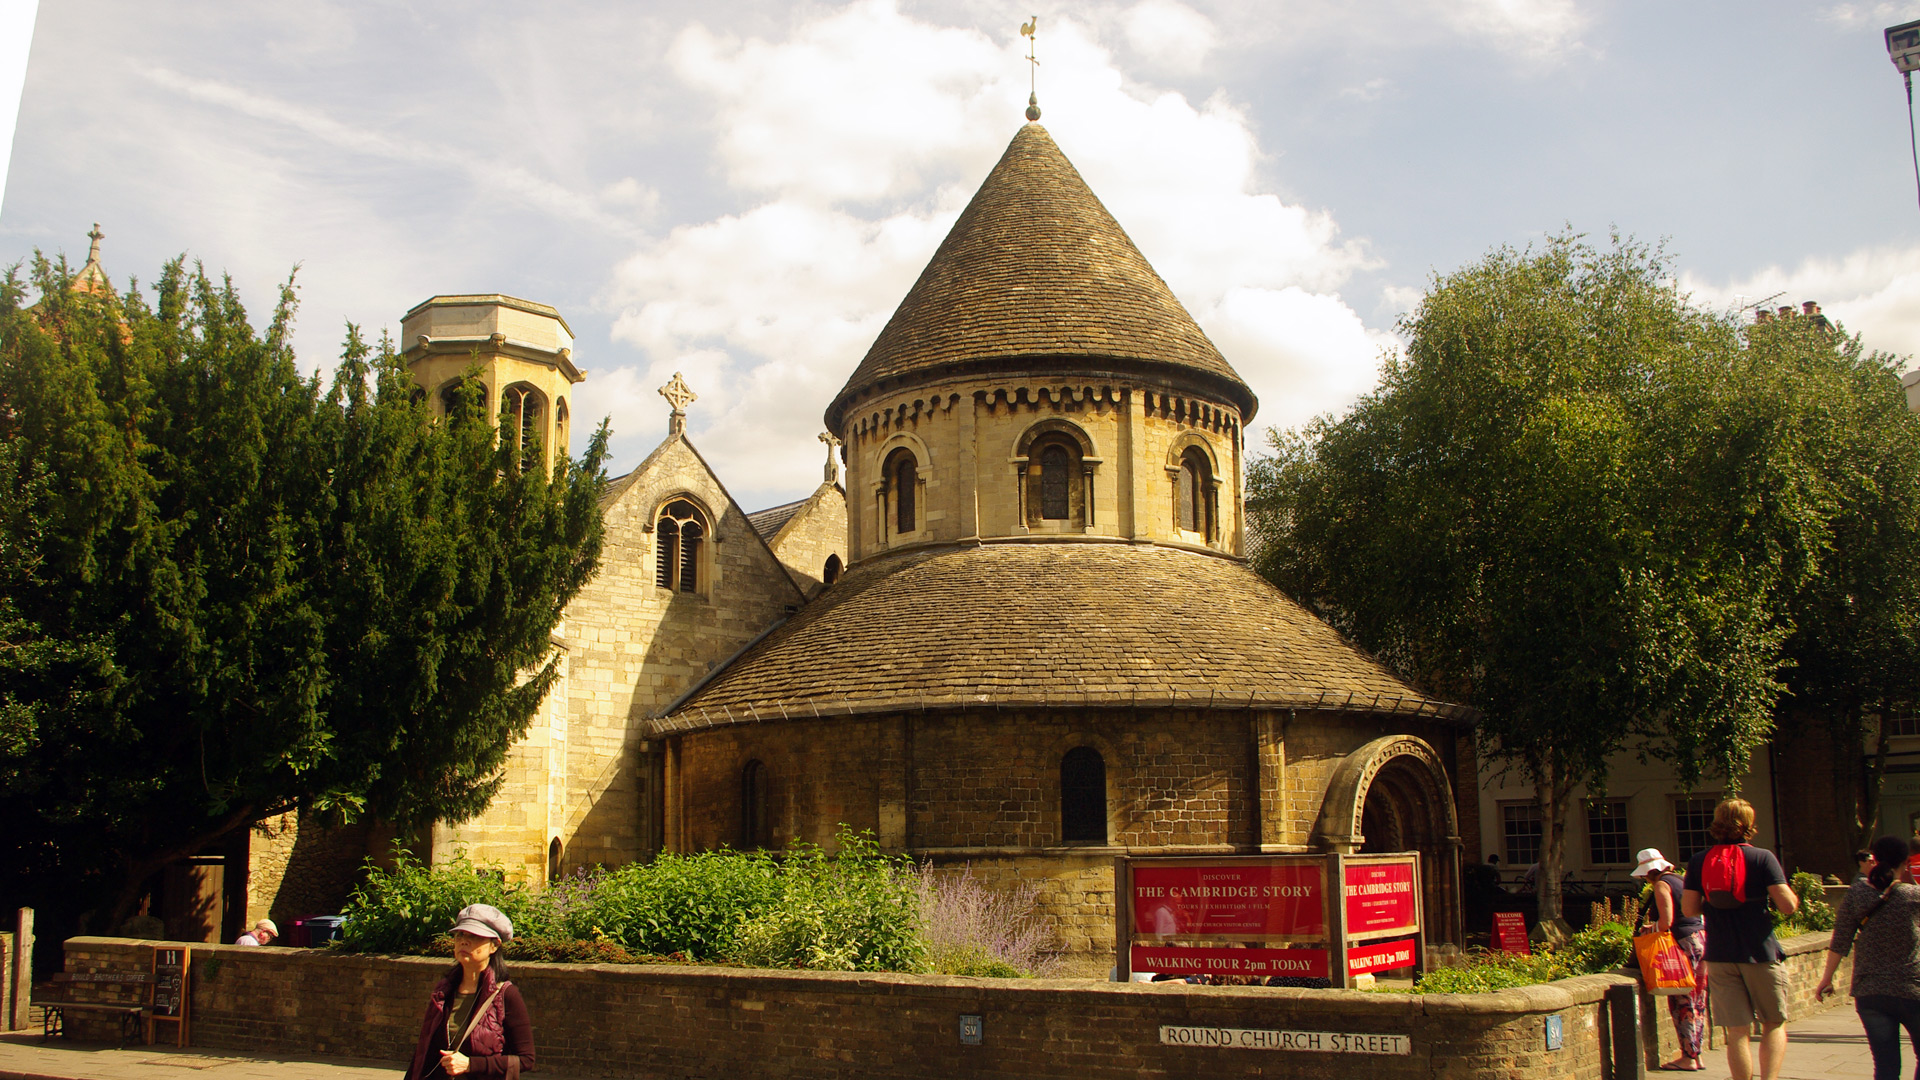 cambridge Church Holy Sepulchre Round Church founded 1130